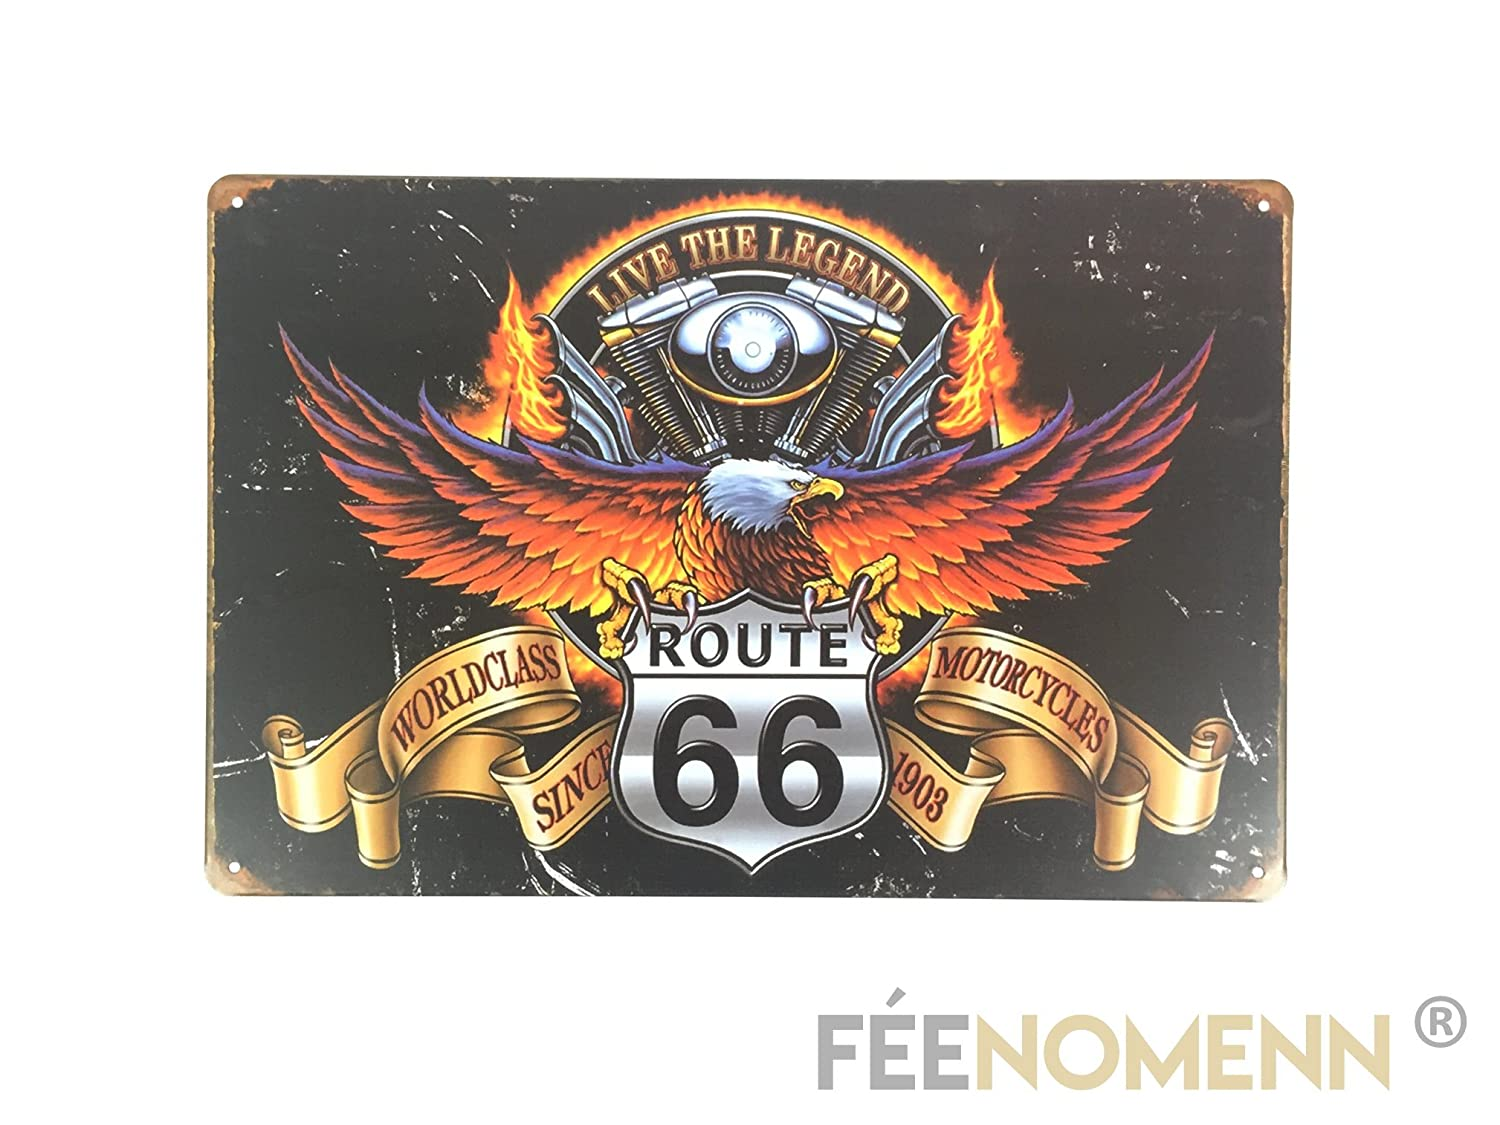 FEENOMENN Plaque Mé tal Dé co Vintage - Aigle Motorcycles Route 66 (20x30cm)